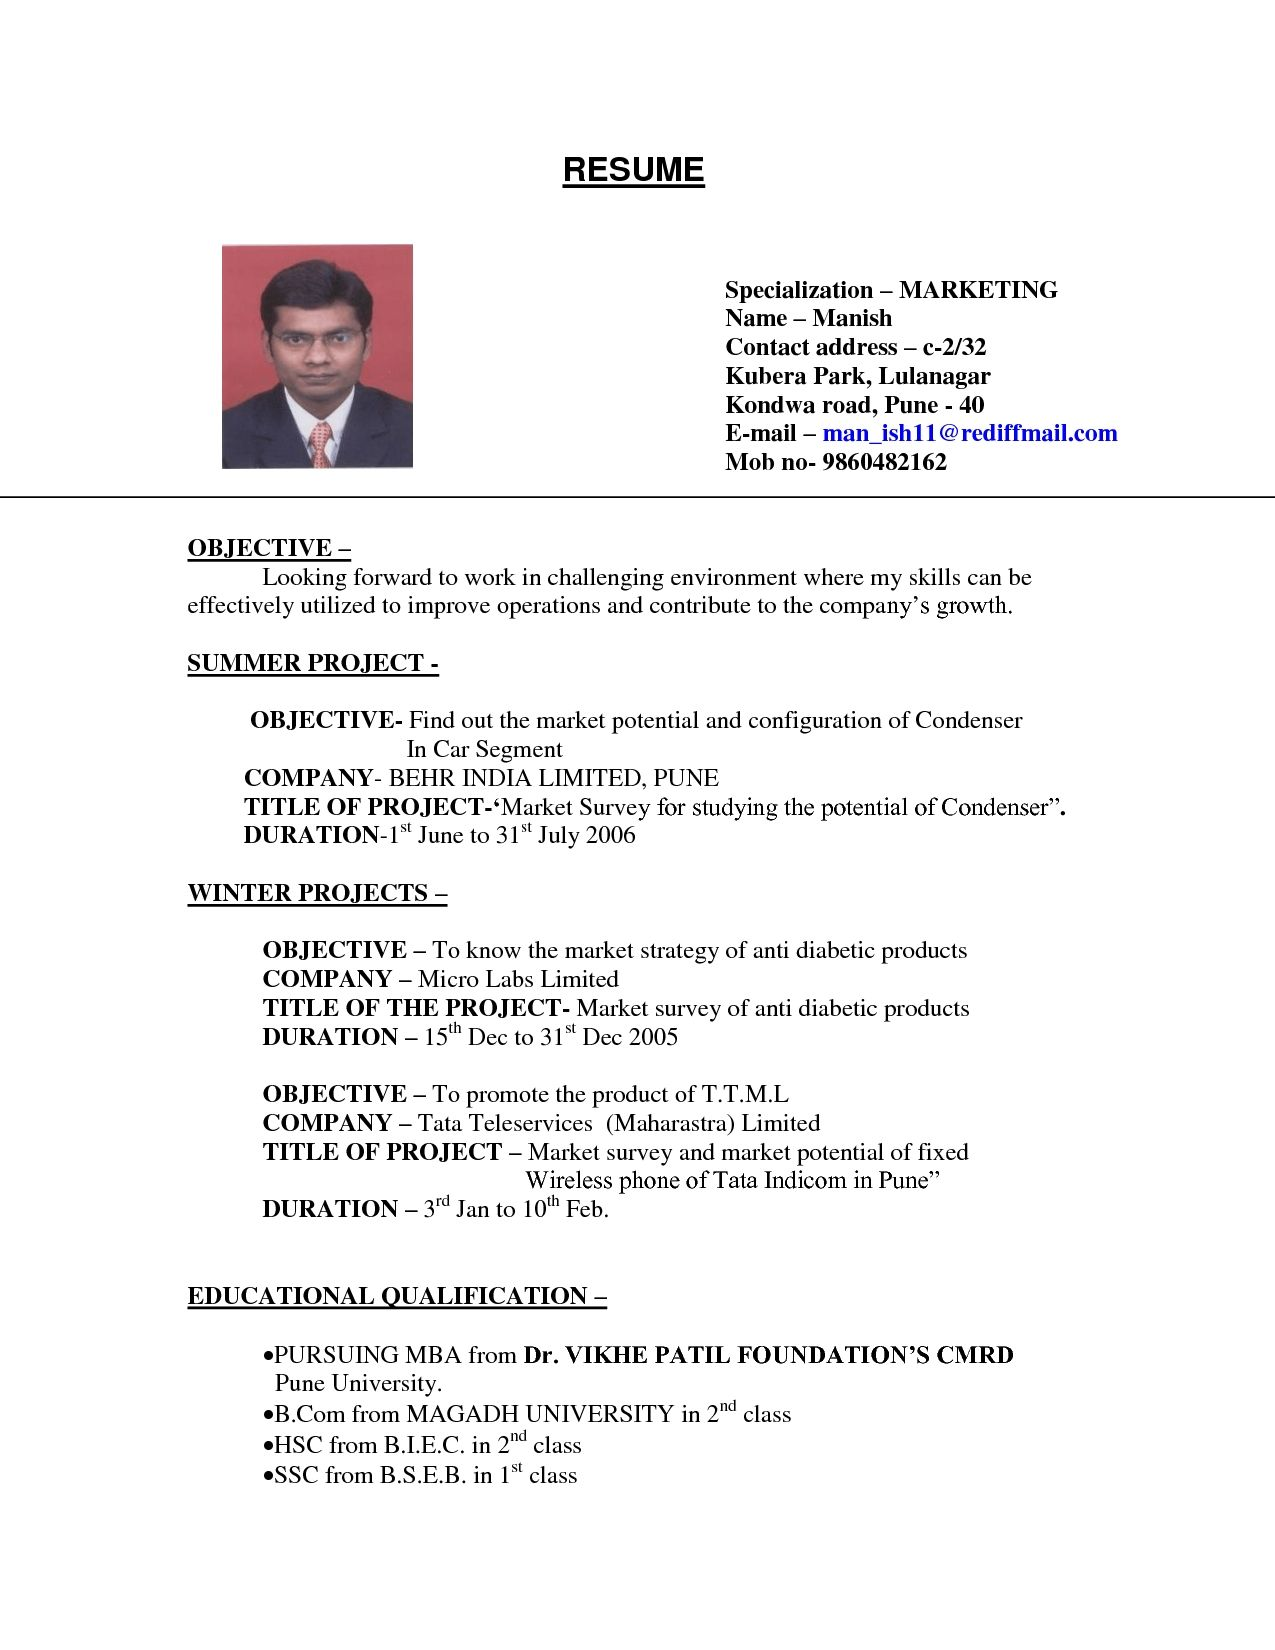 Format Of A Resume For Applying A Job Examples Of Resumes Sample Resume For College Student